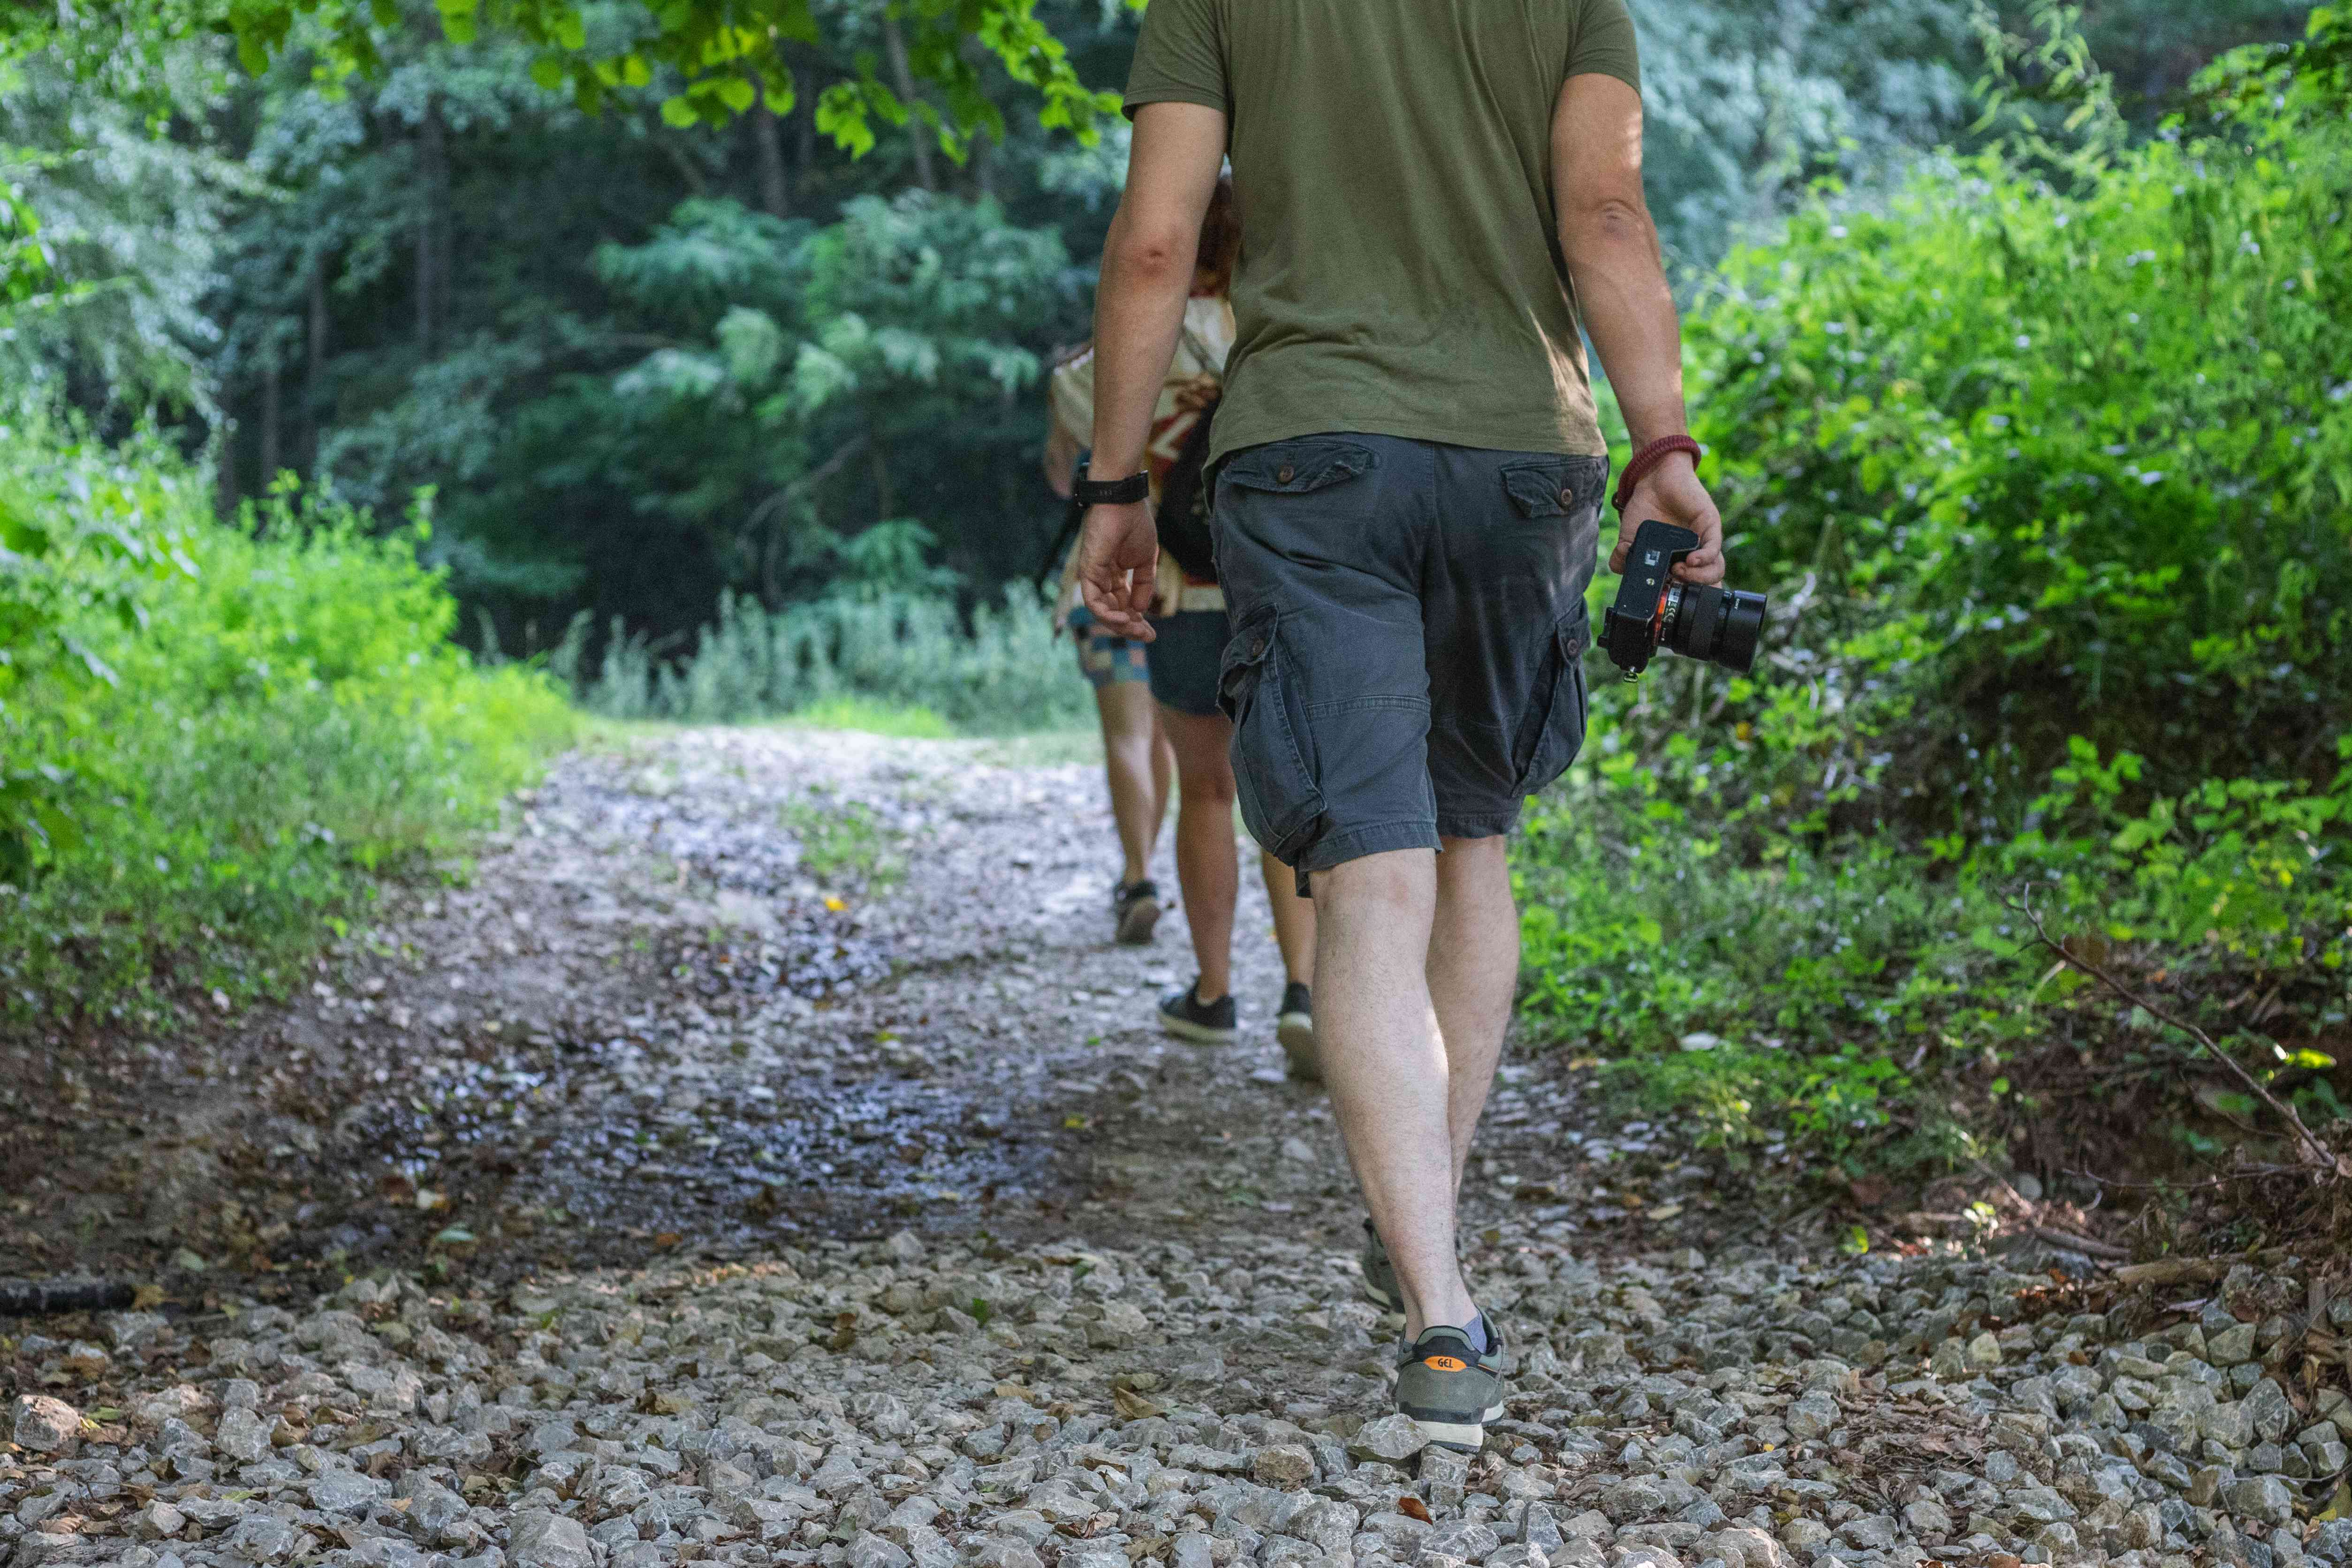 group of hikers stay on rocky trail as they head into woods